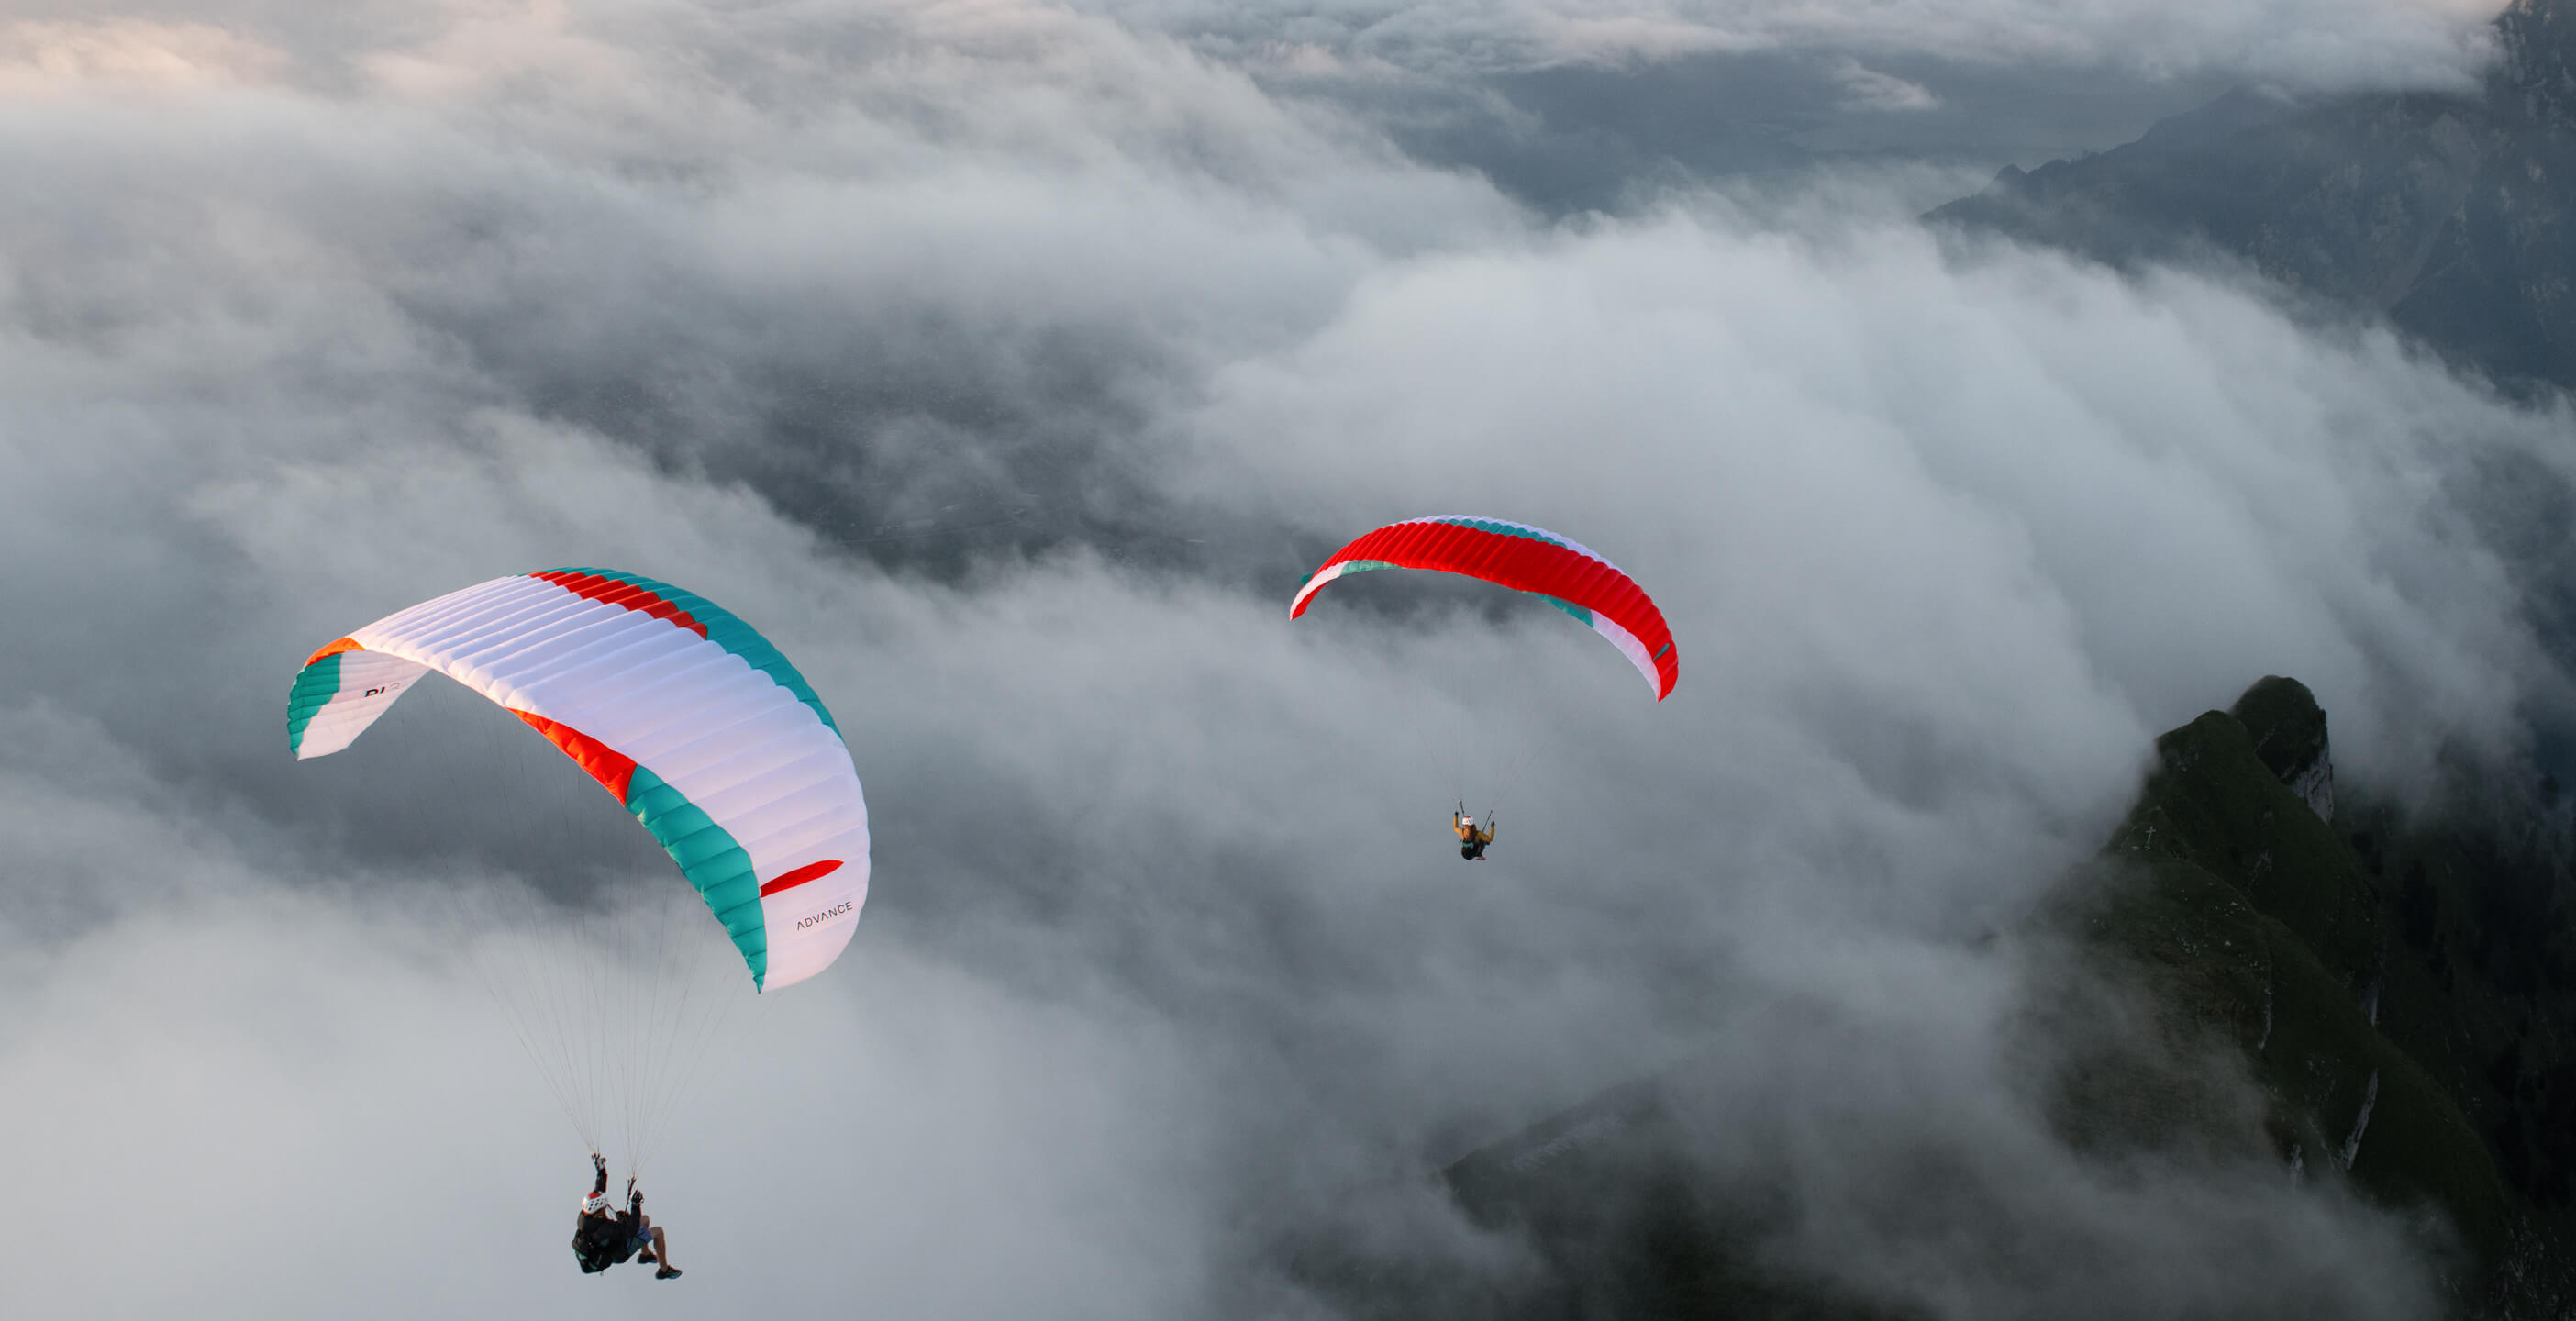 Advance Pi3 hike and fly paraglider